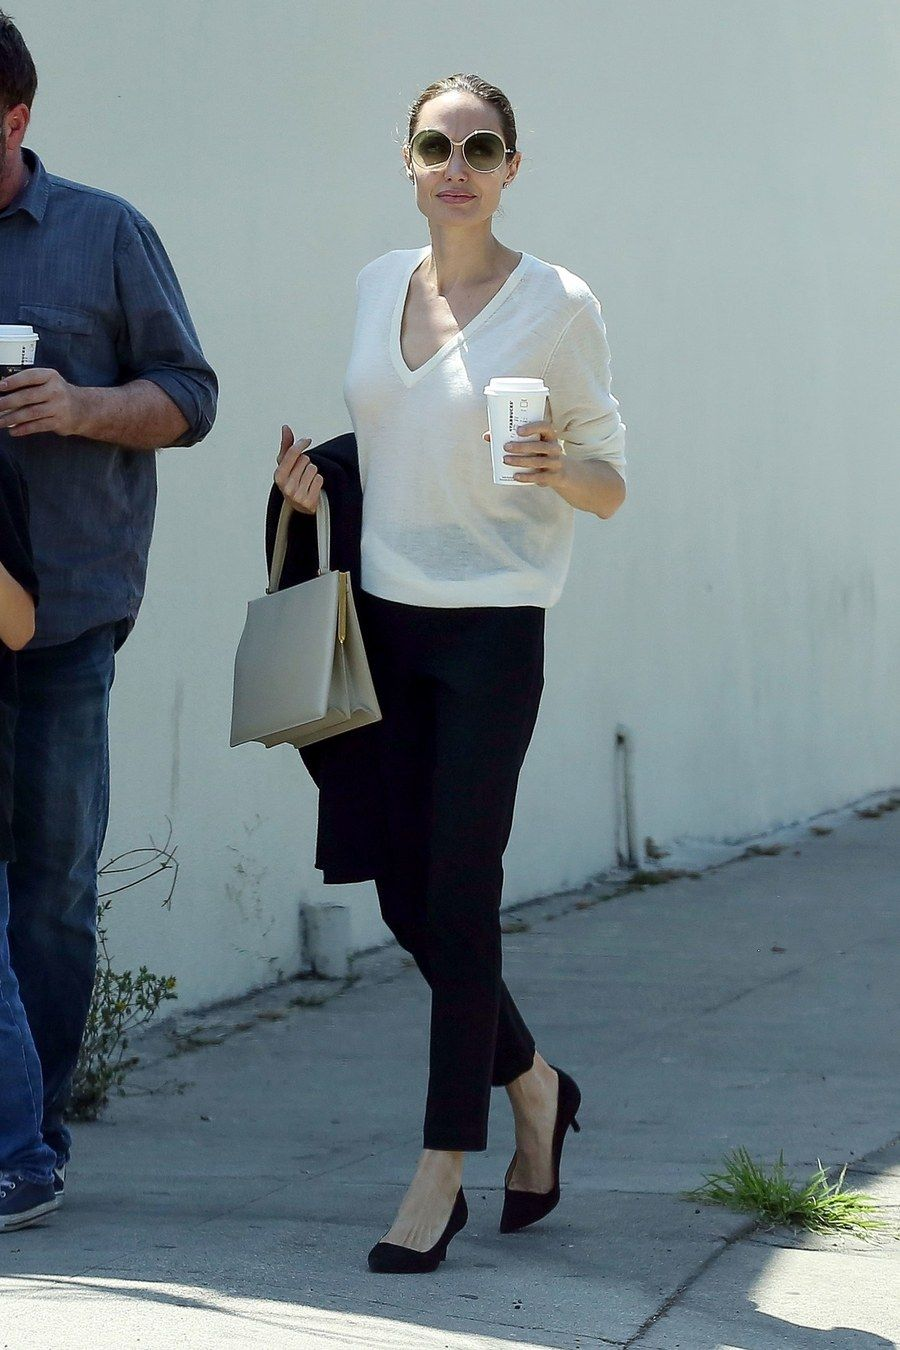 The Academy Award Winning Actress Angelina Jolie Stepped Out With A Polished Yet Unfussy Approach Angelina Jolie Style Kitten Heels Outfit Black Kitten Heels